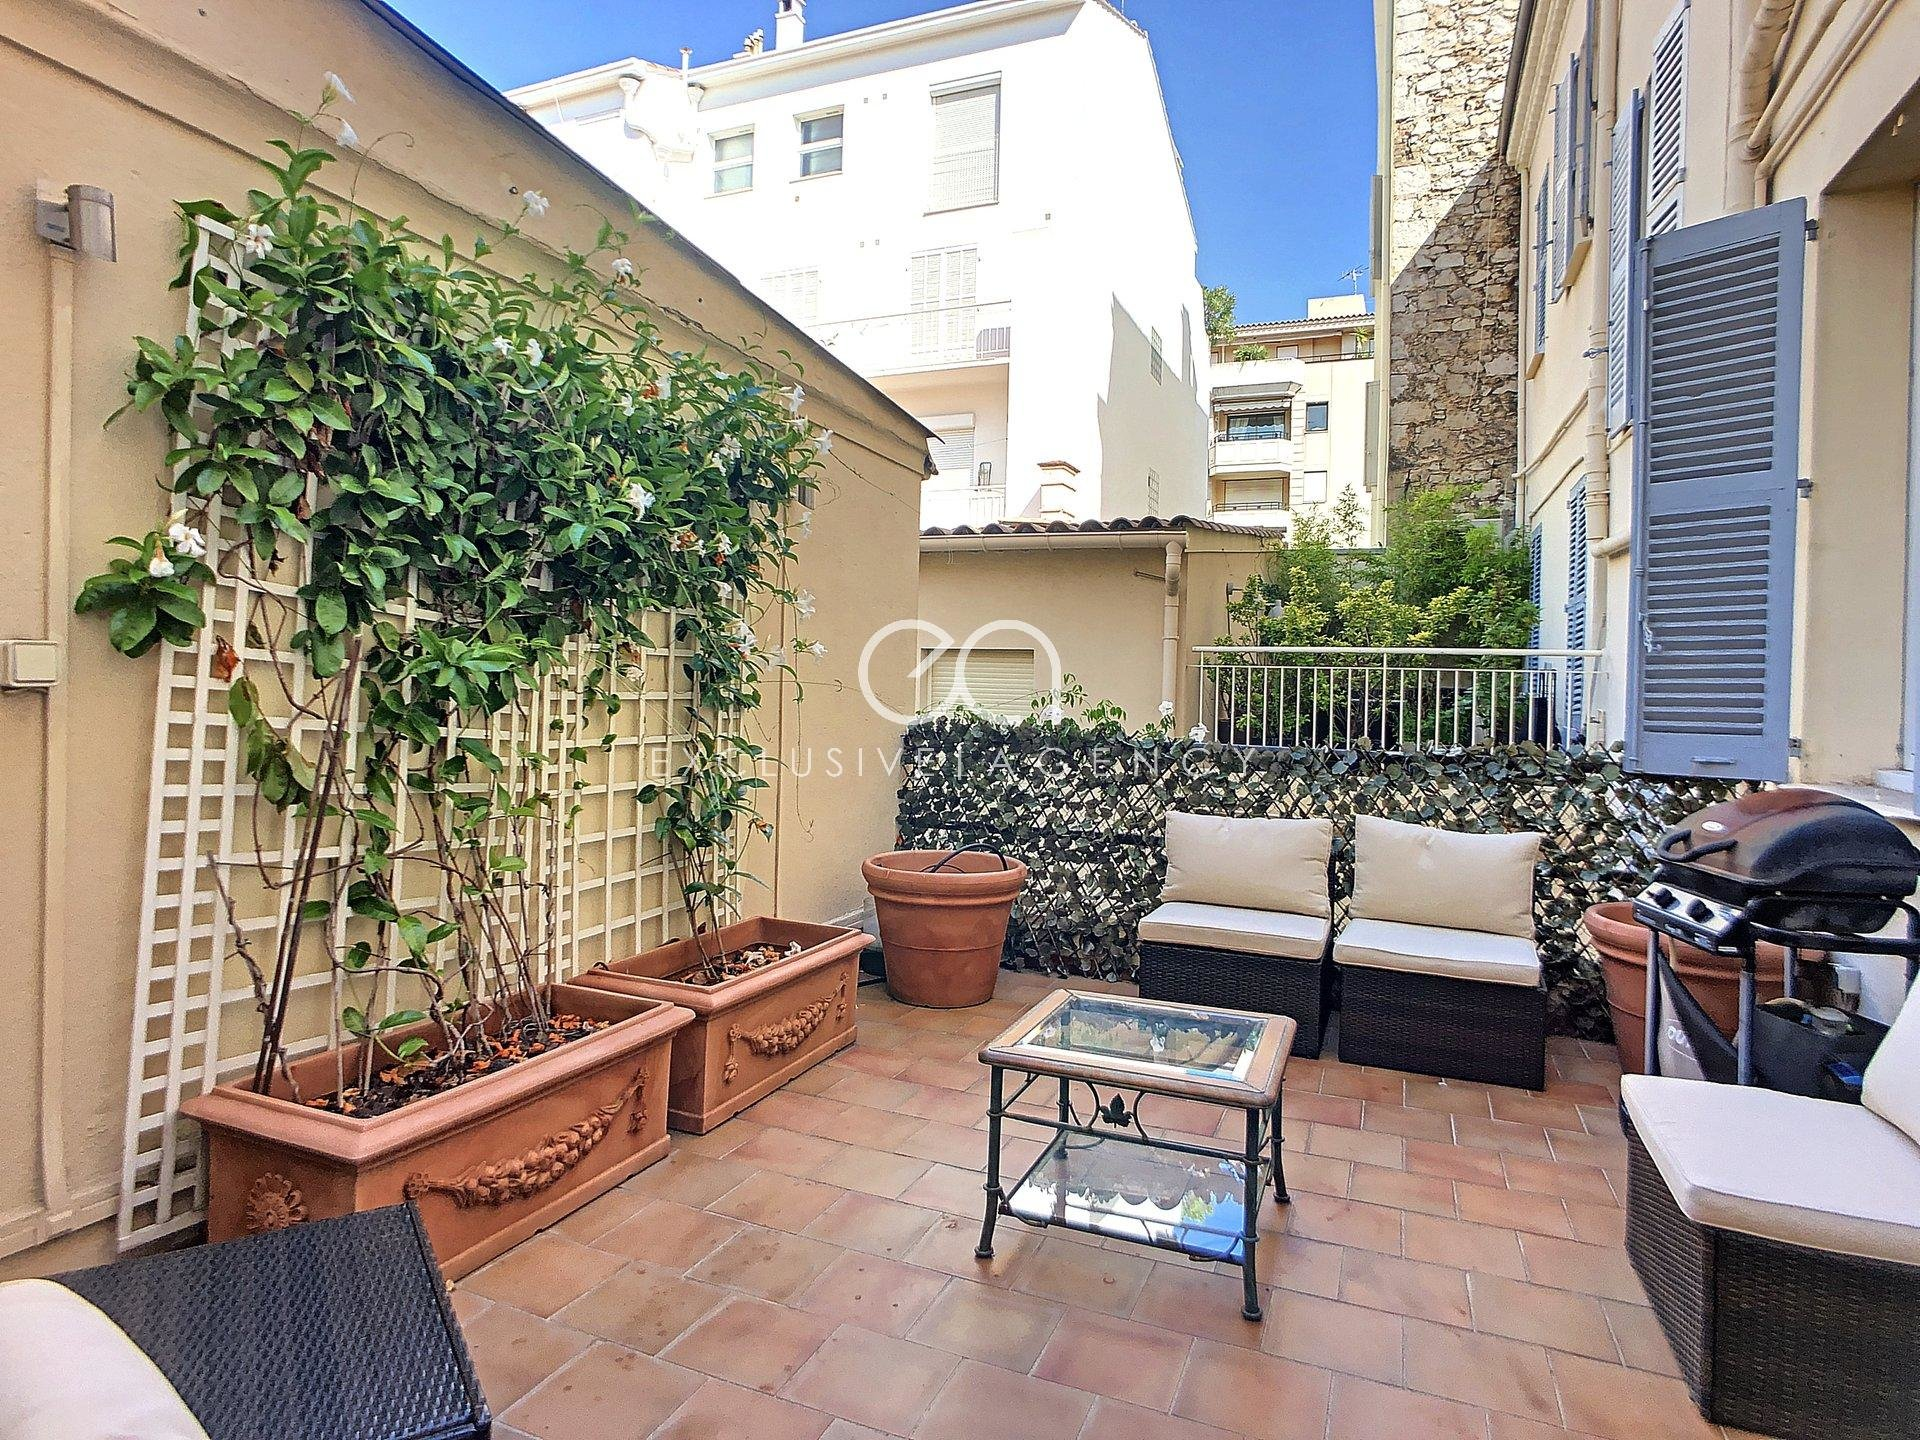 CANNES RUE D'ANTIBES SALE 3 ROOMS 88M2 AND 18M2 TERRACE IN PEACE